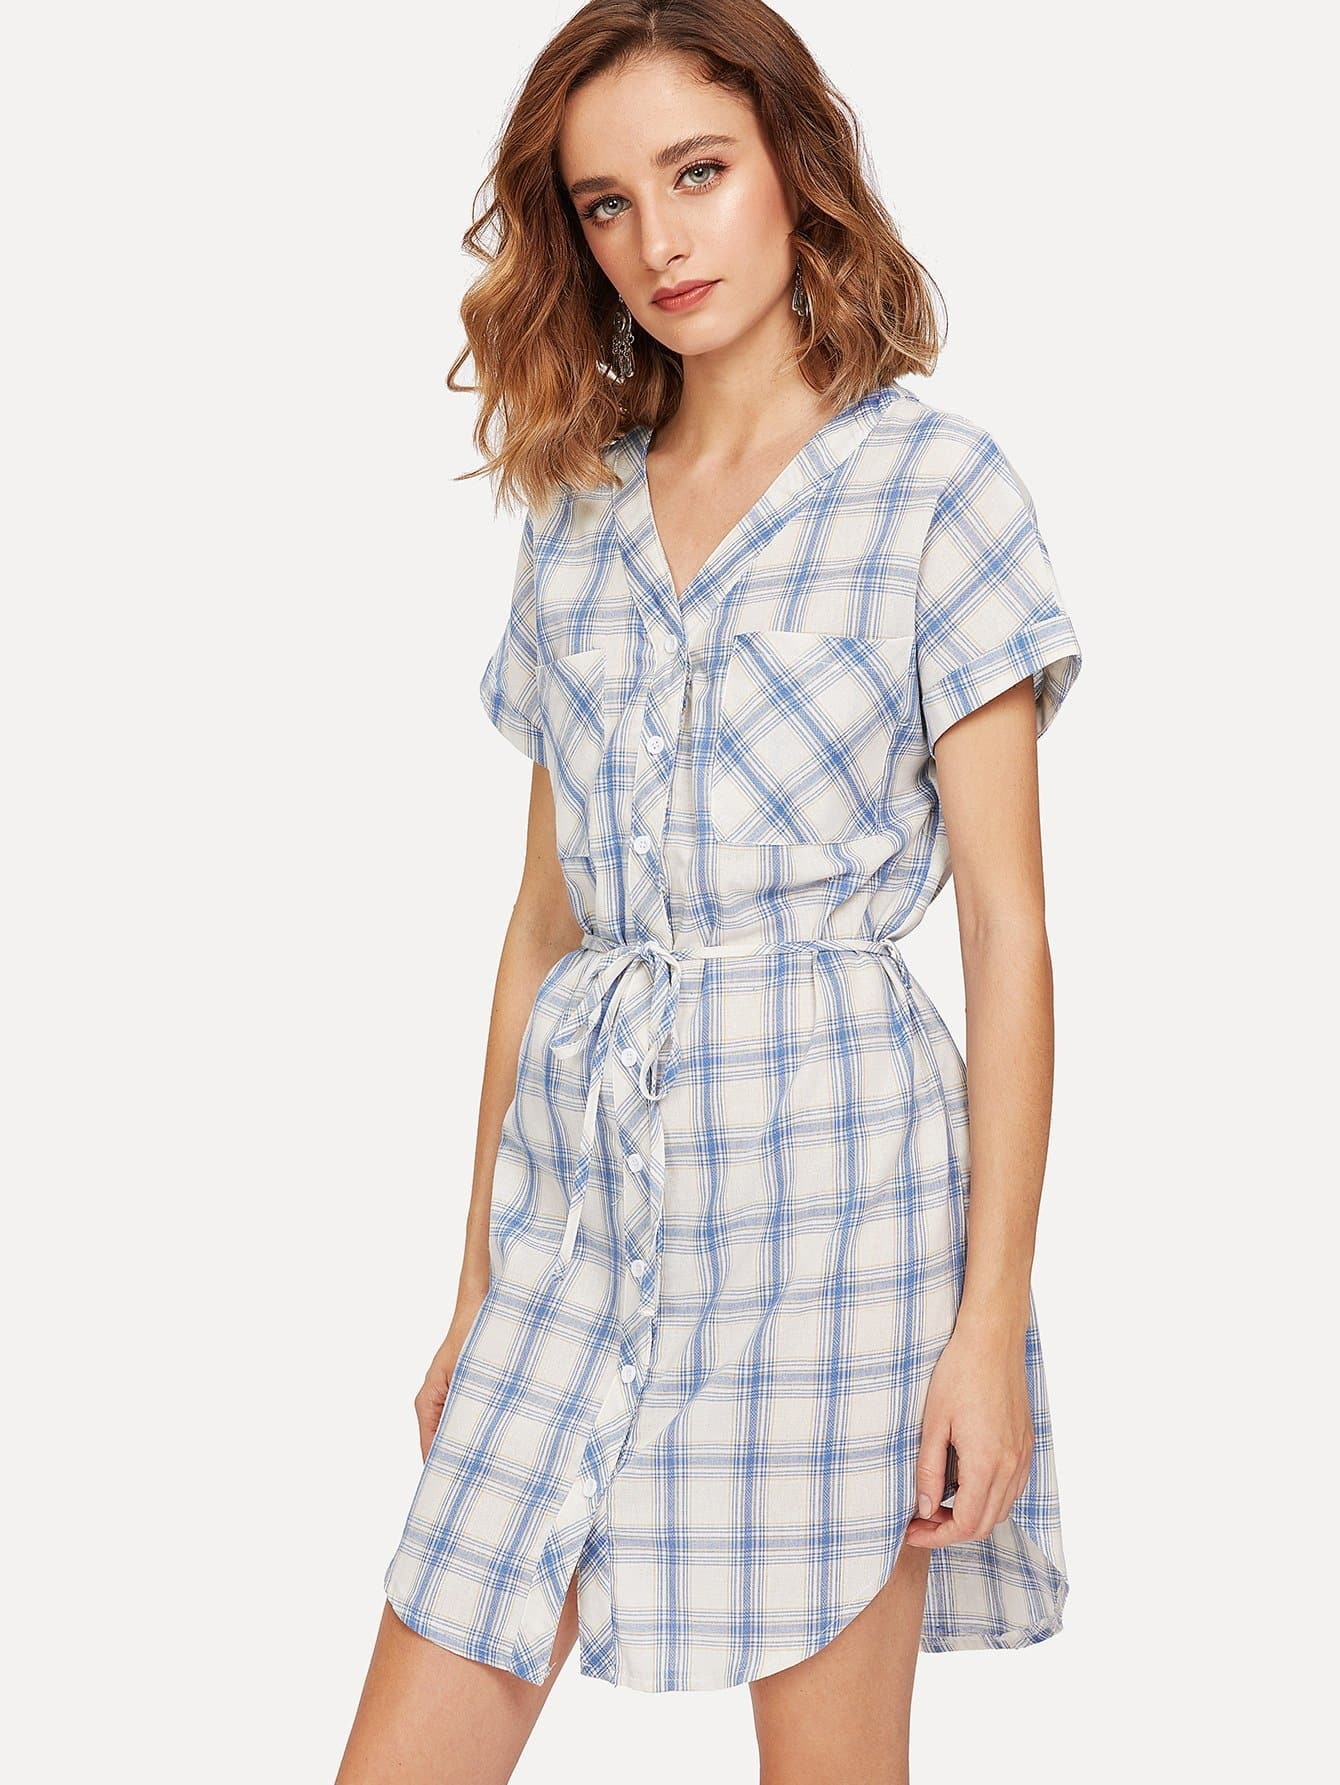 Pocket Patched Plaid Curved Hem Shirt Dress pocket patched plaid curved hem shirt dress